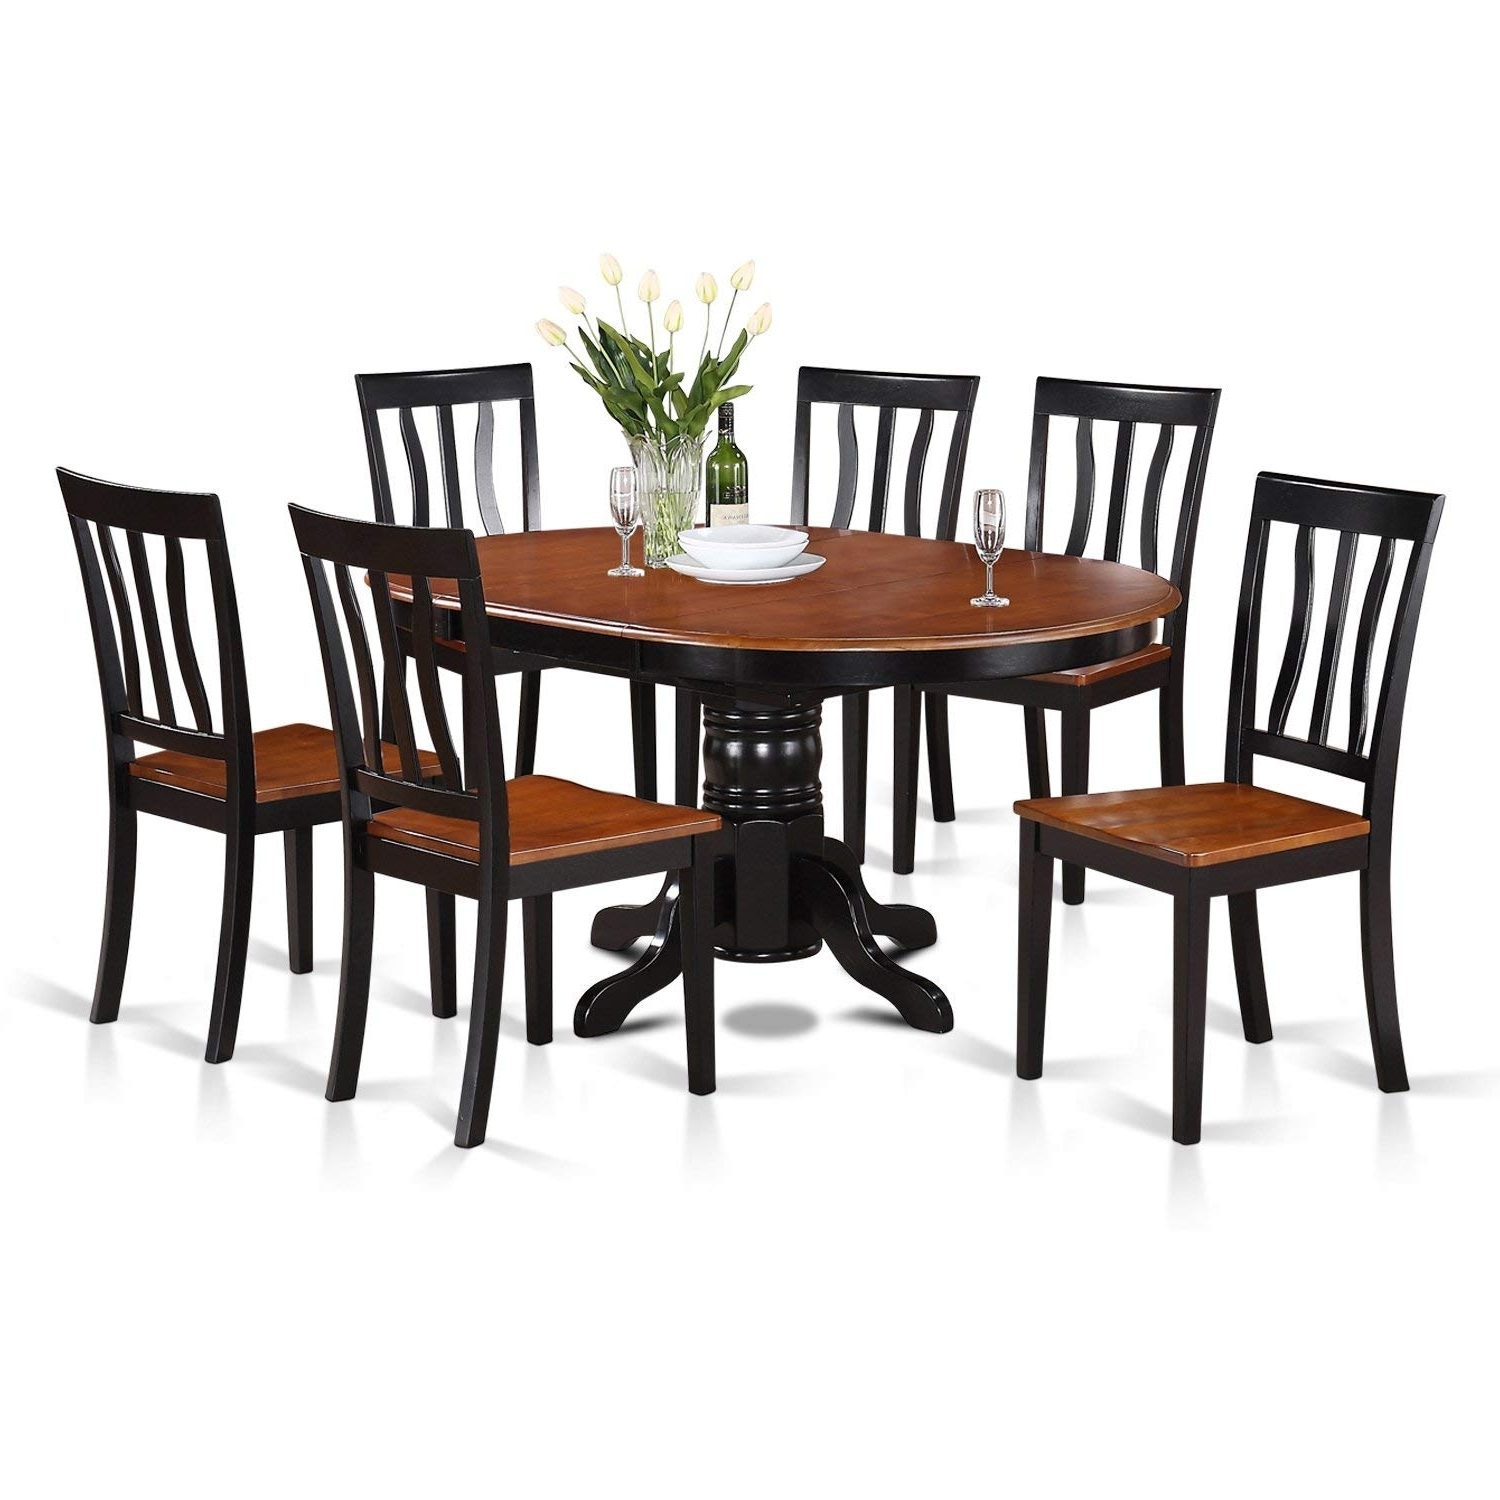 Best And Newest Amazon: East West Furniture Avat7 Blk W 7 Piece Dining Table Set Inside Cheap Dining Tables Sets (Gallery 2 of 25)